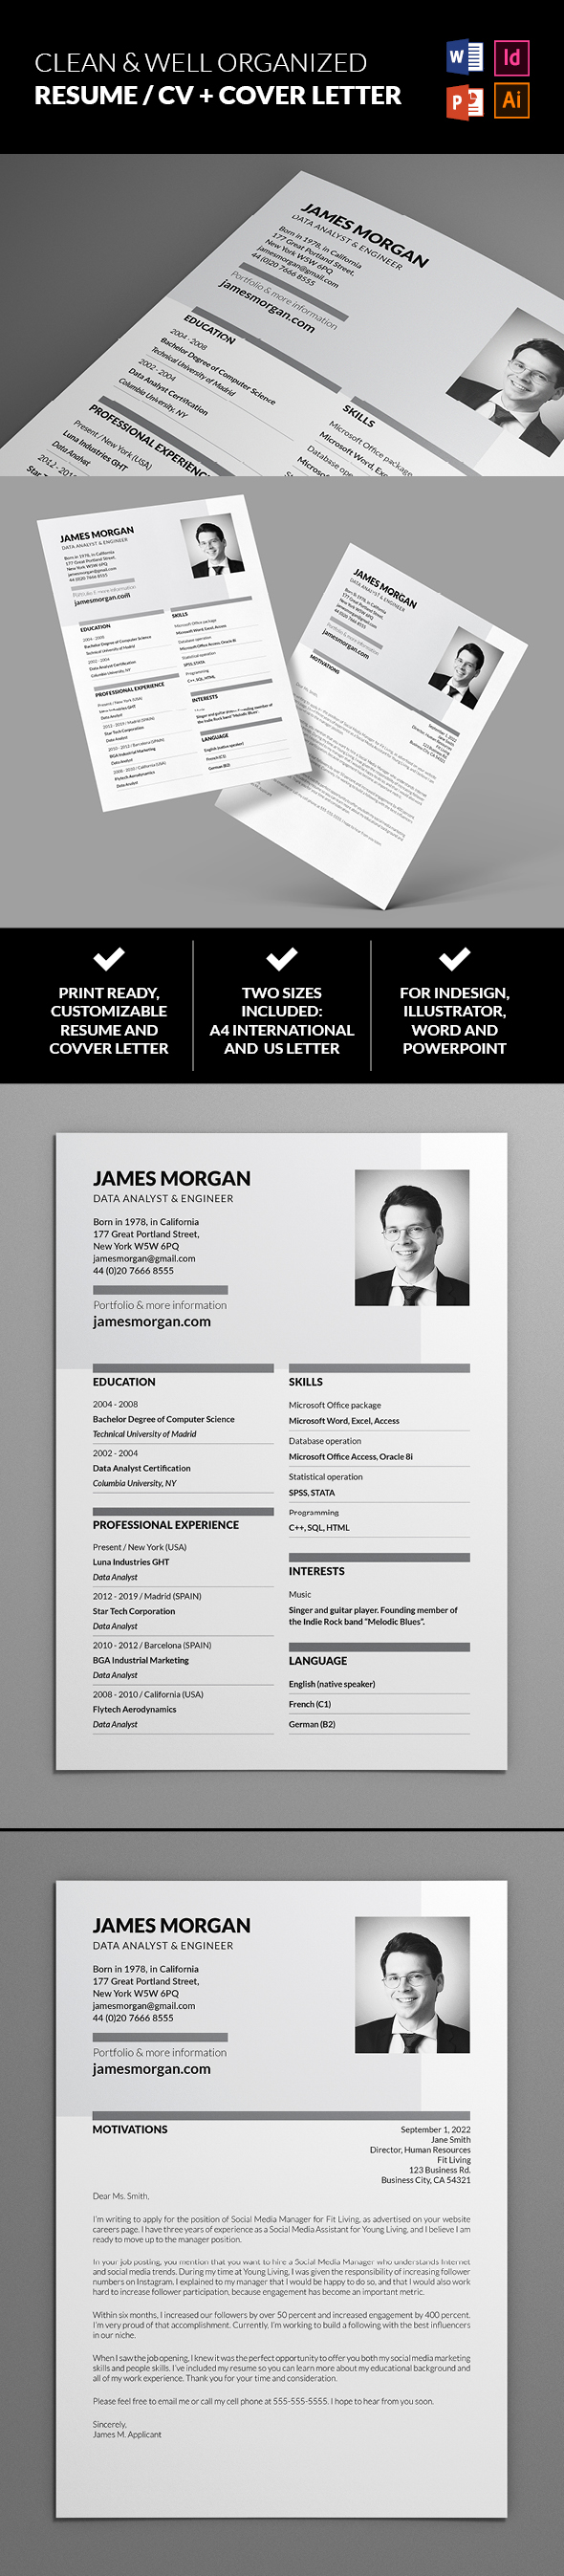 Free Resume And Cover Letter Templates from altaydagistan.com